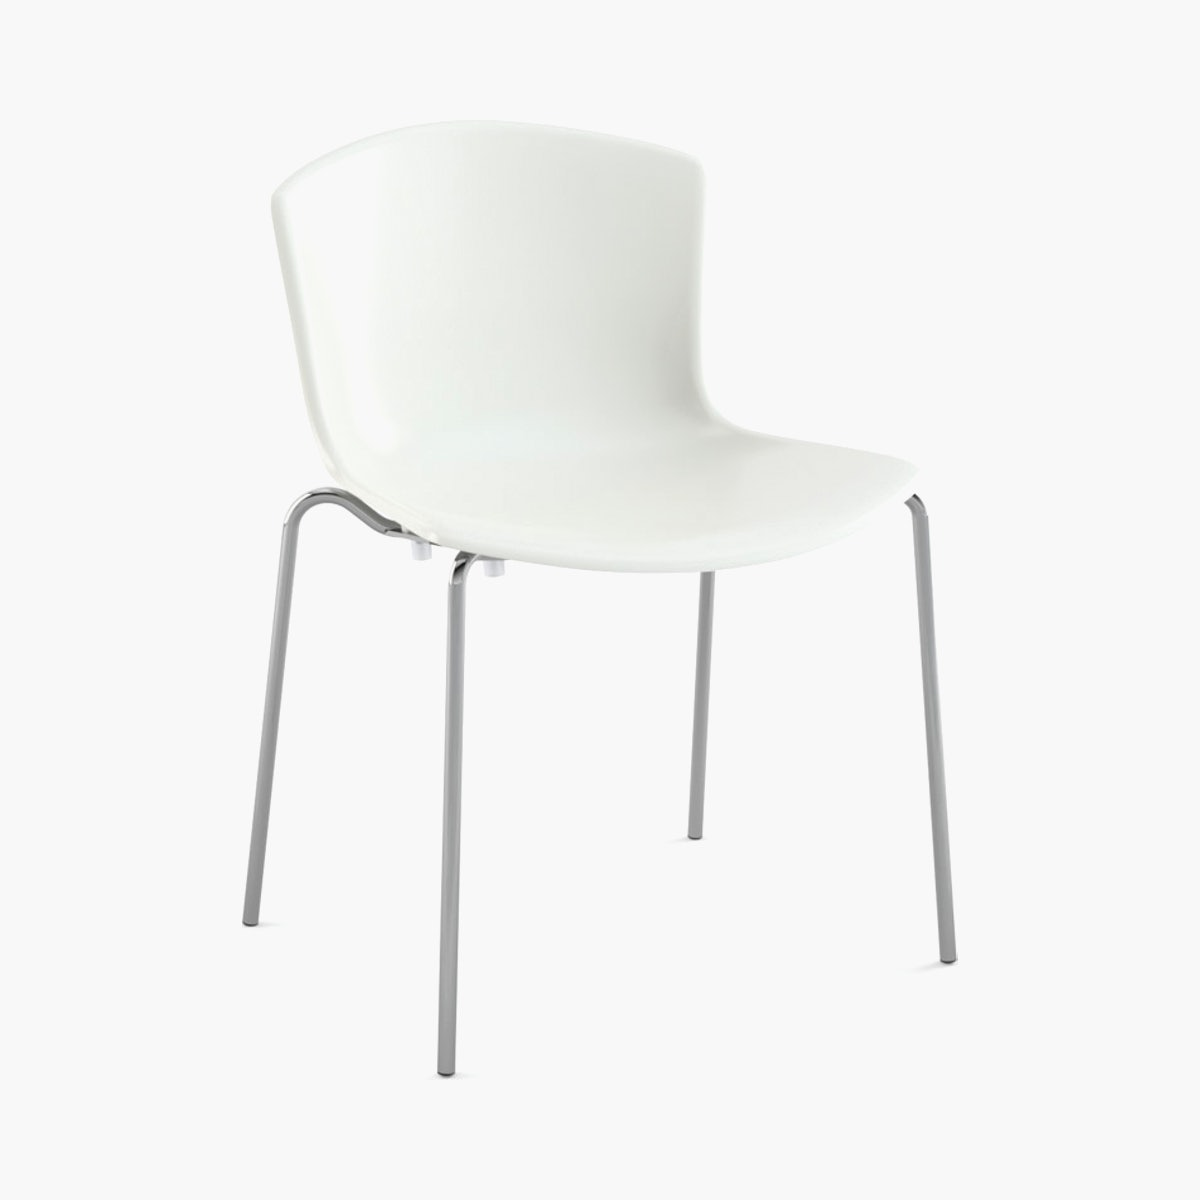 Bertoia Stacking Molded Shell Chair